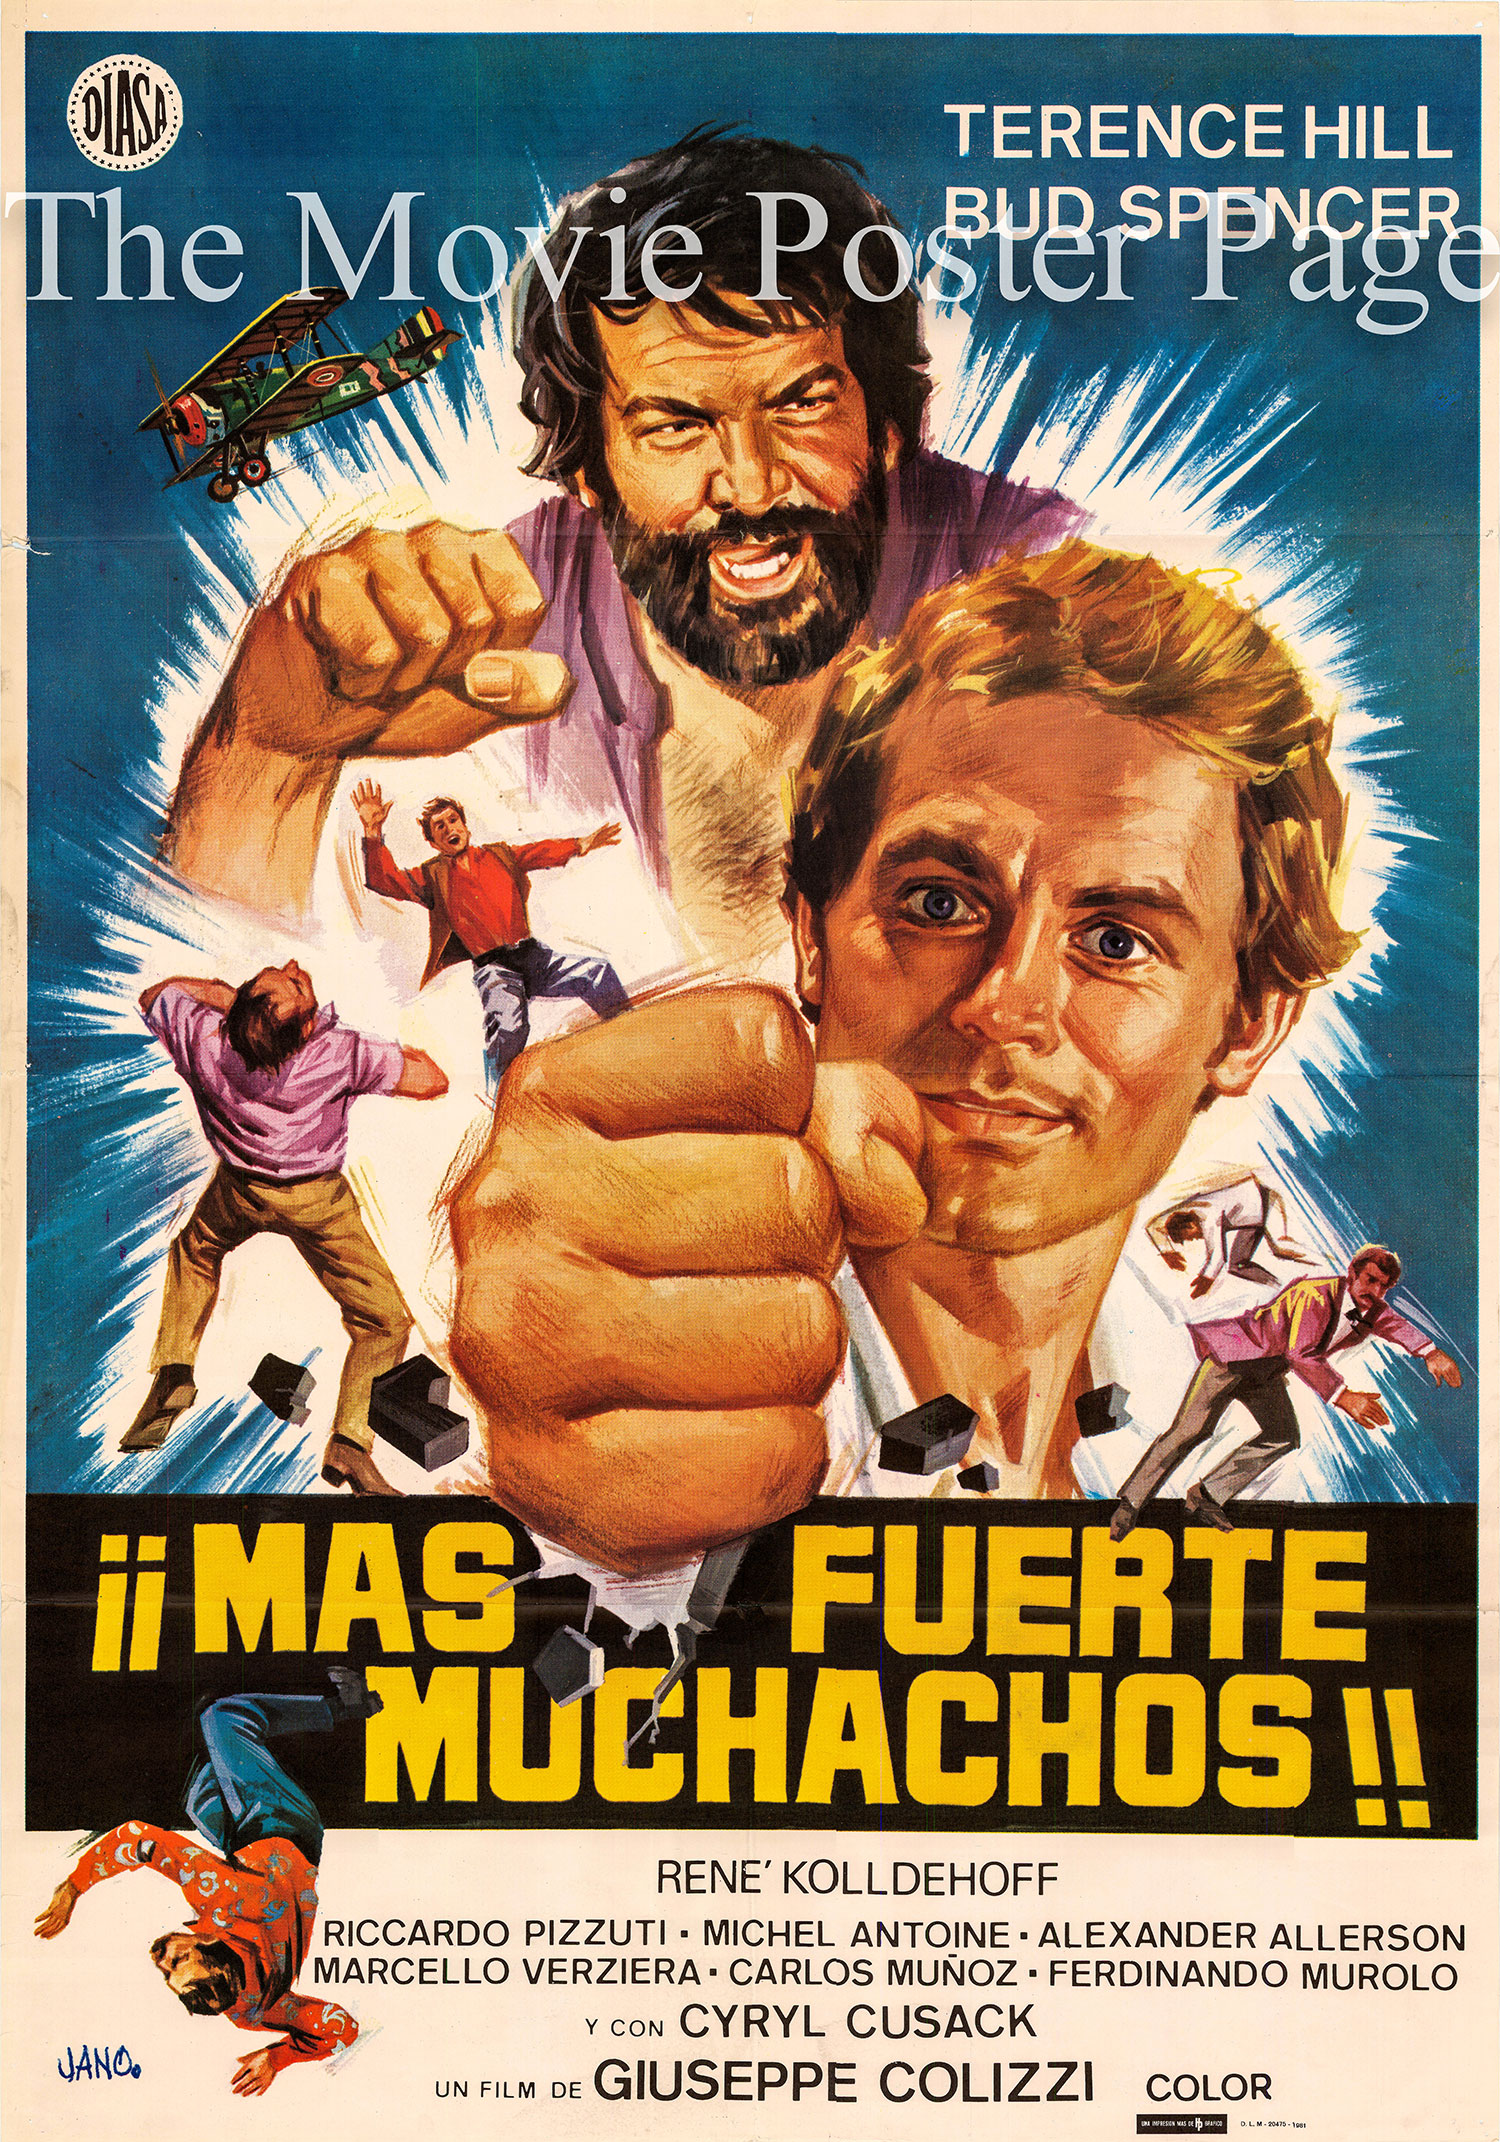 Pictured is a Spanish promotional poster for the 1973 Giuseppe Colizzi film All the Way Boys starring Terence Hill.